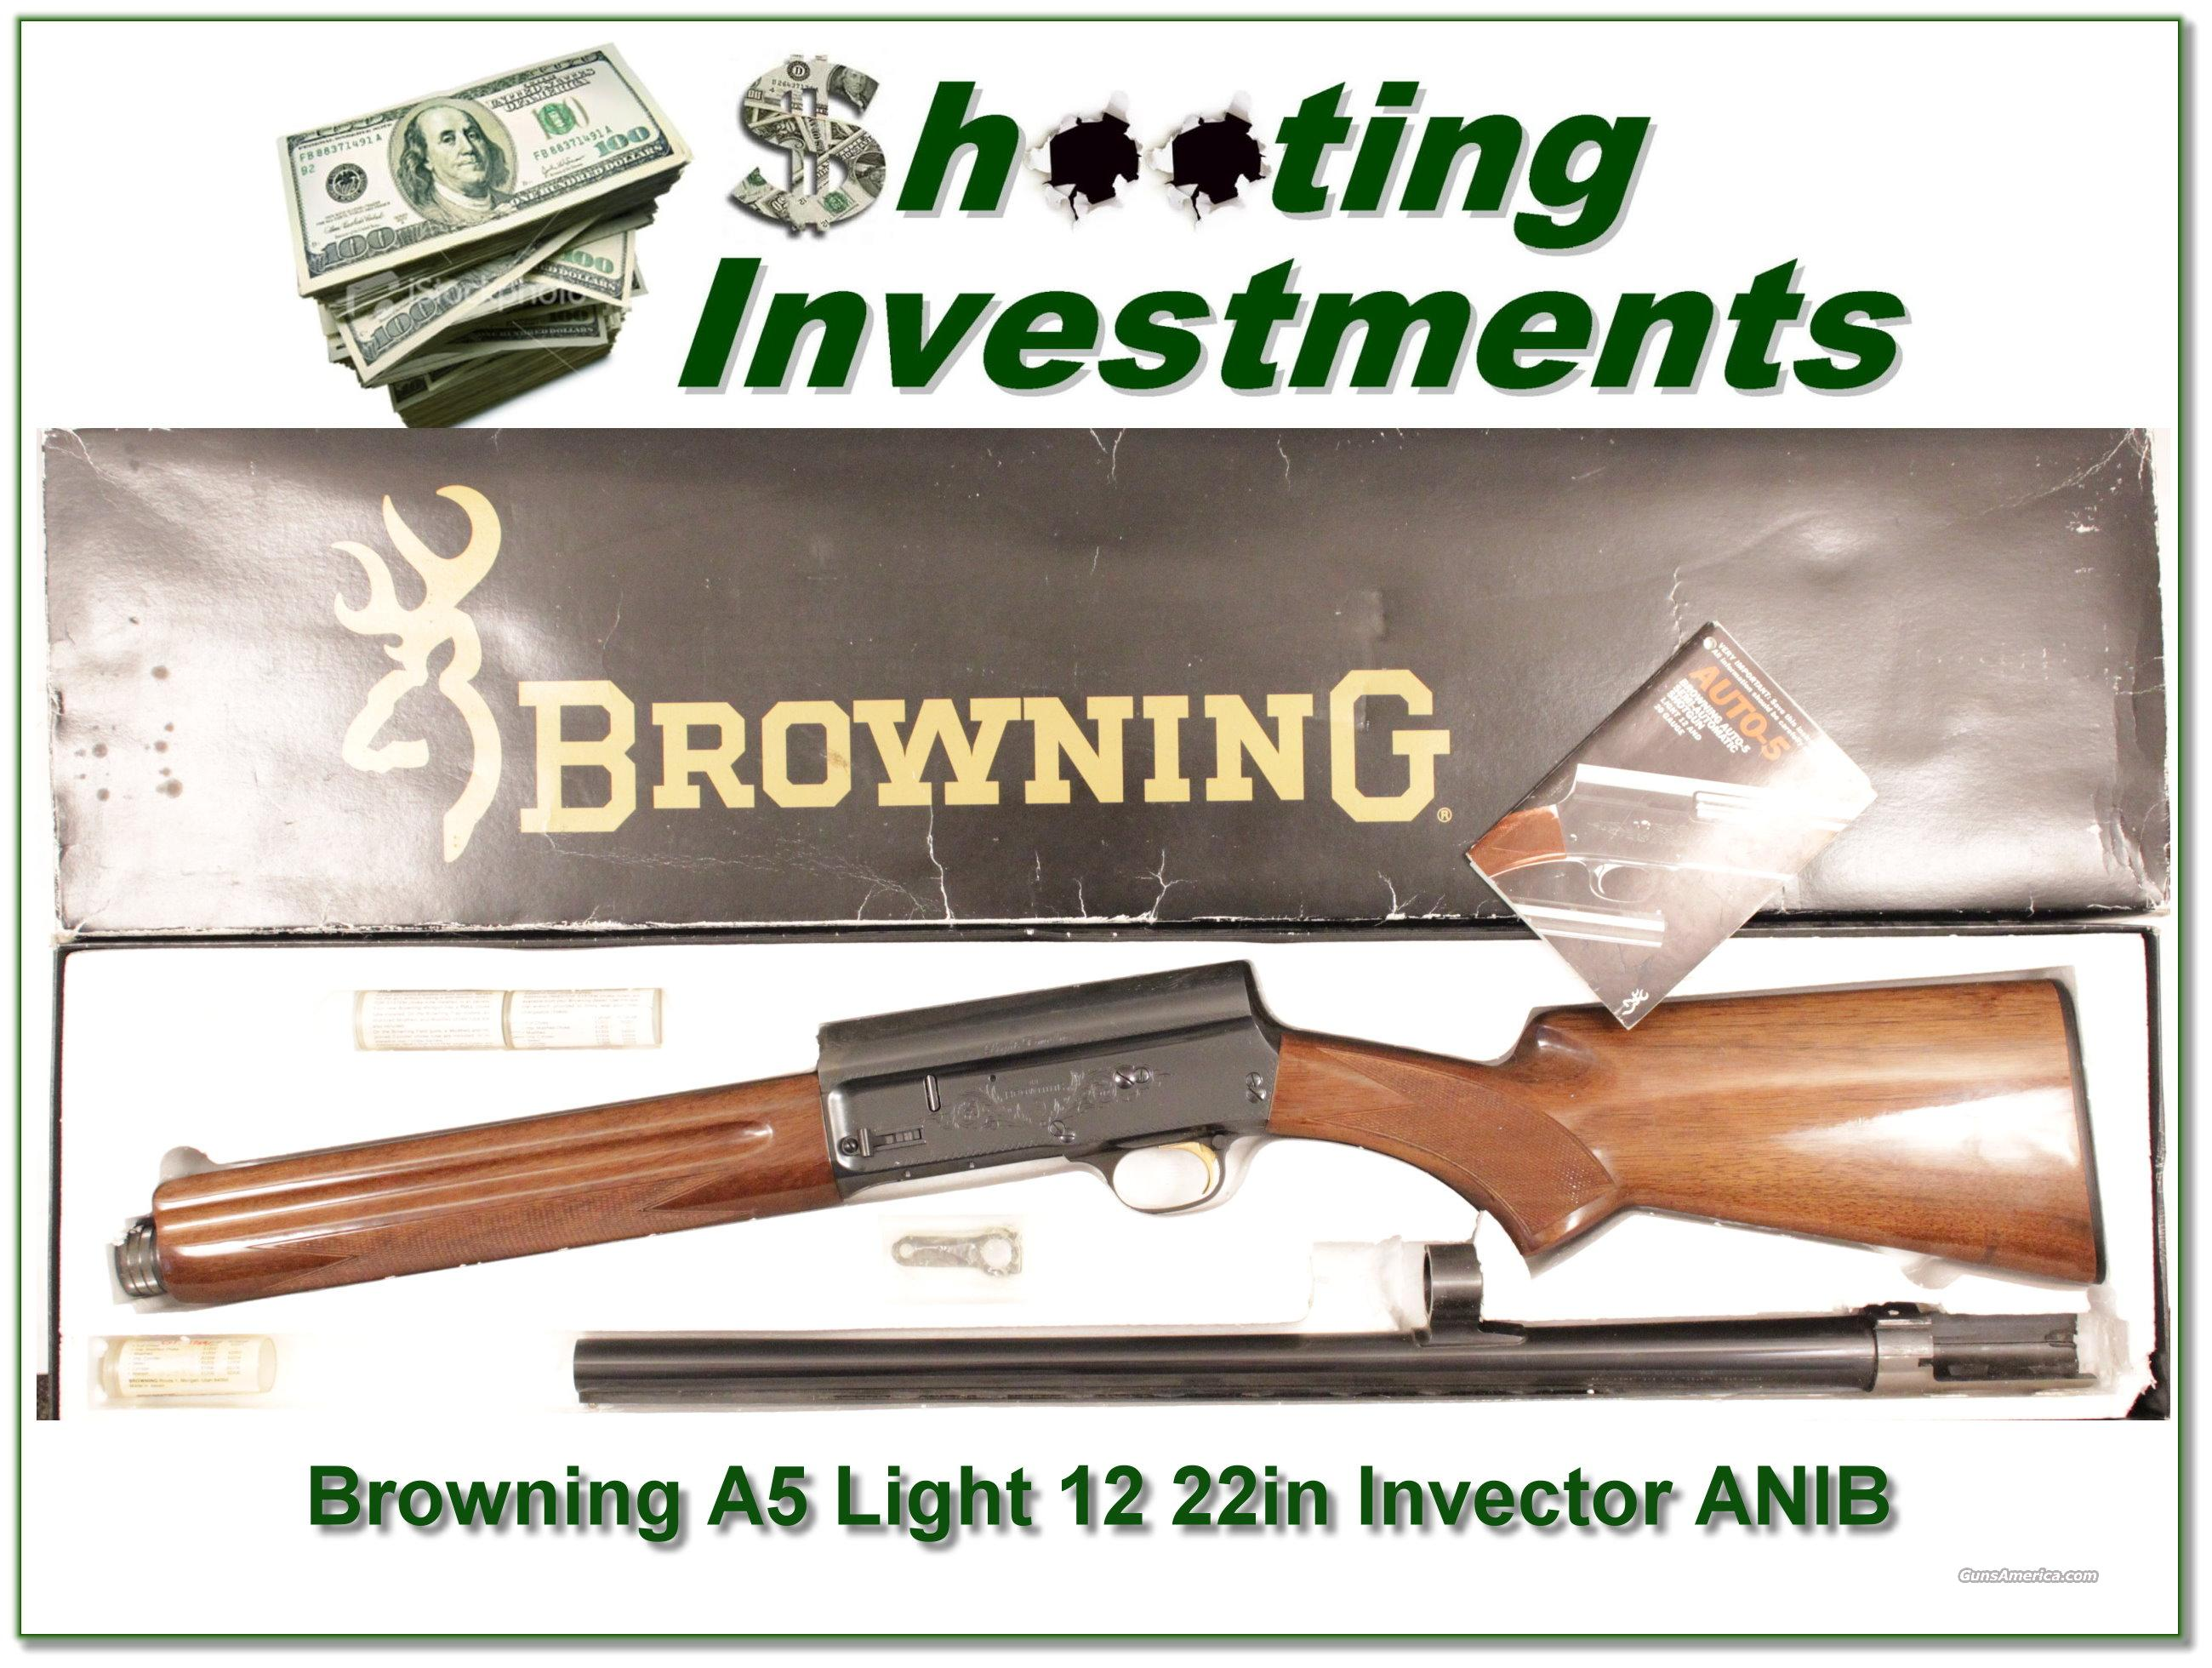 Browning A5 Light 12 ANIB 22in Invector!  Guns > Shotguns > Browning Shotguns > Autoloaders > Hunting